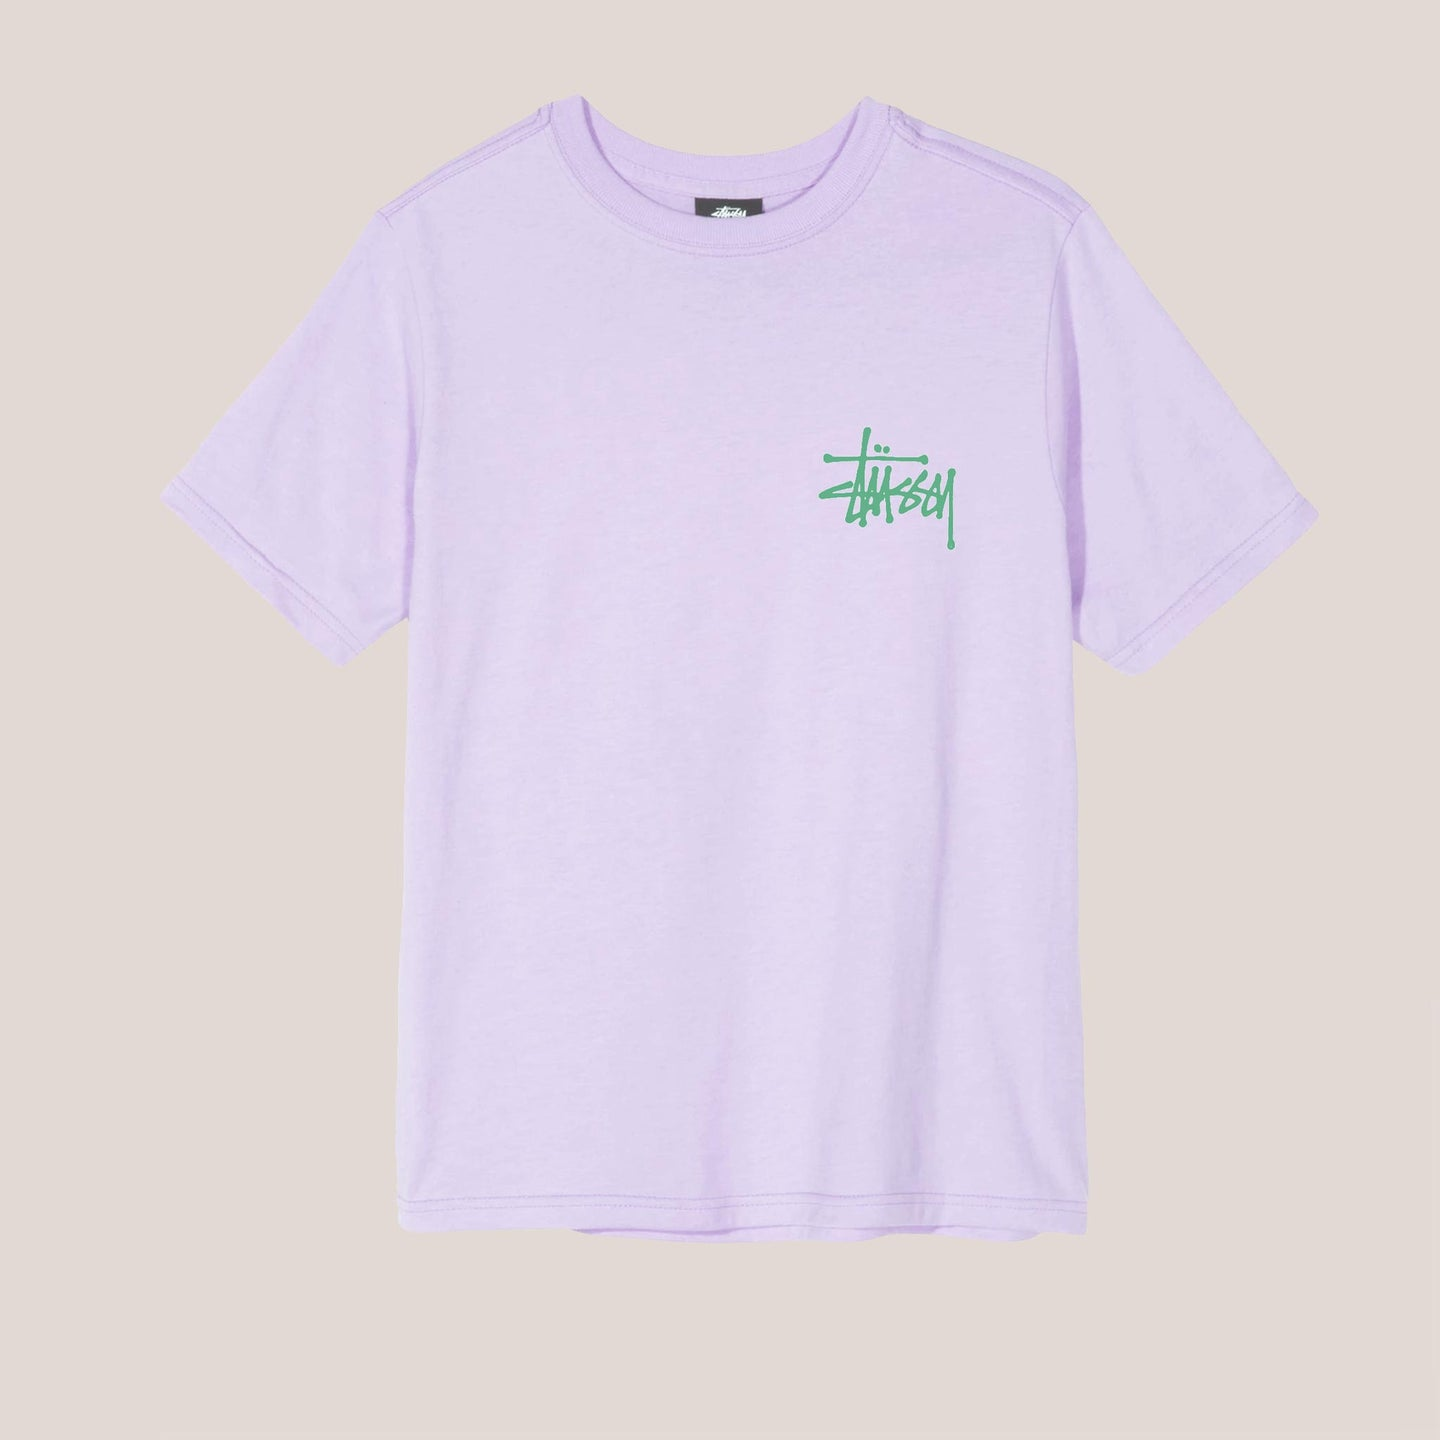 Stussy - Basic Stussy Pigment Dyed Tee, available at LCD.